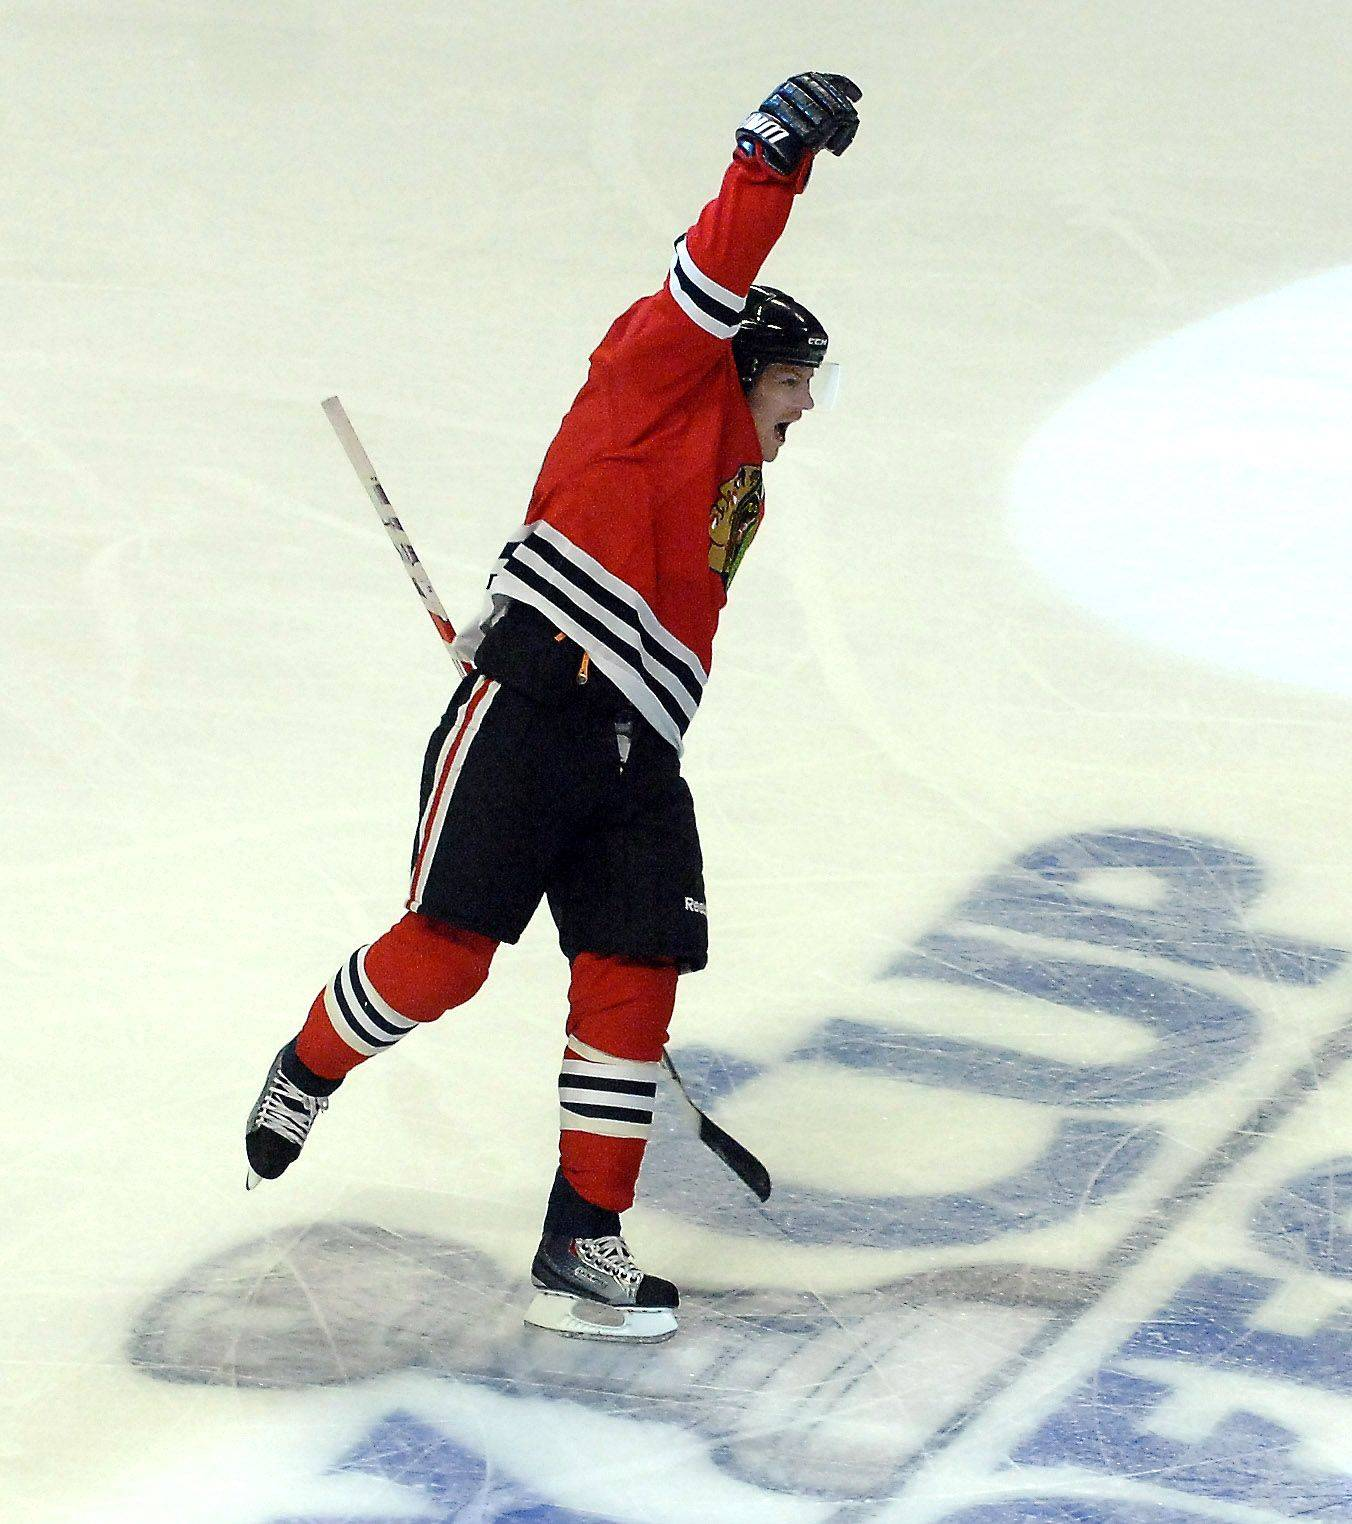 Chicago Blackhawks defenseman Duncan Keith celebrates his first period goal during Game 3 of the NHL Western Conference Quarterfinals Sunday at the United Center in Chicago.